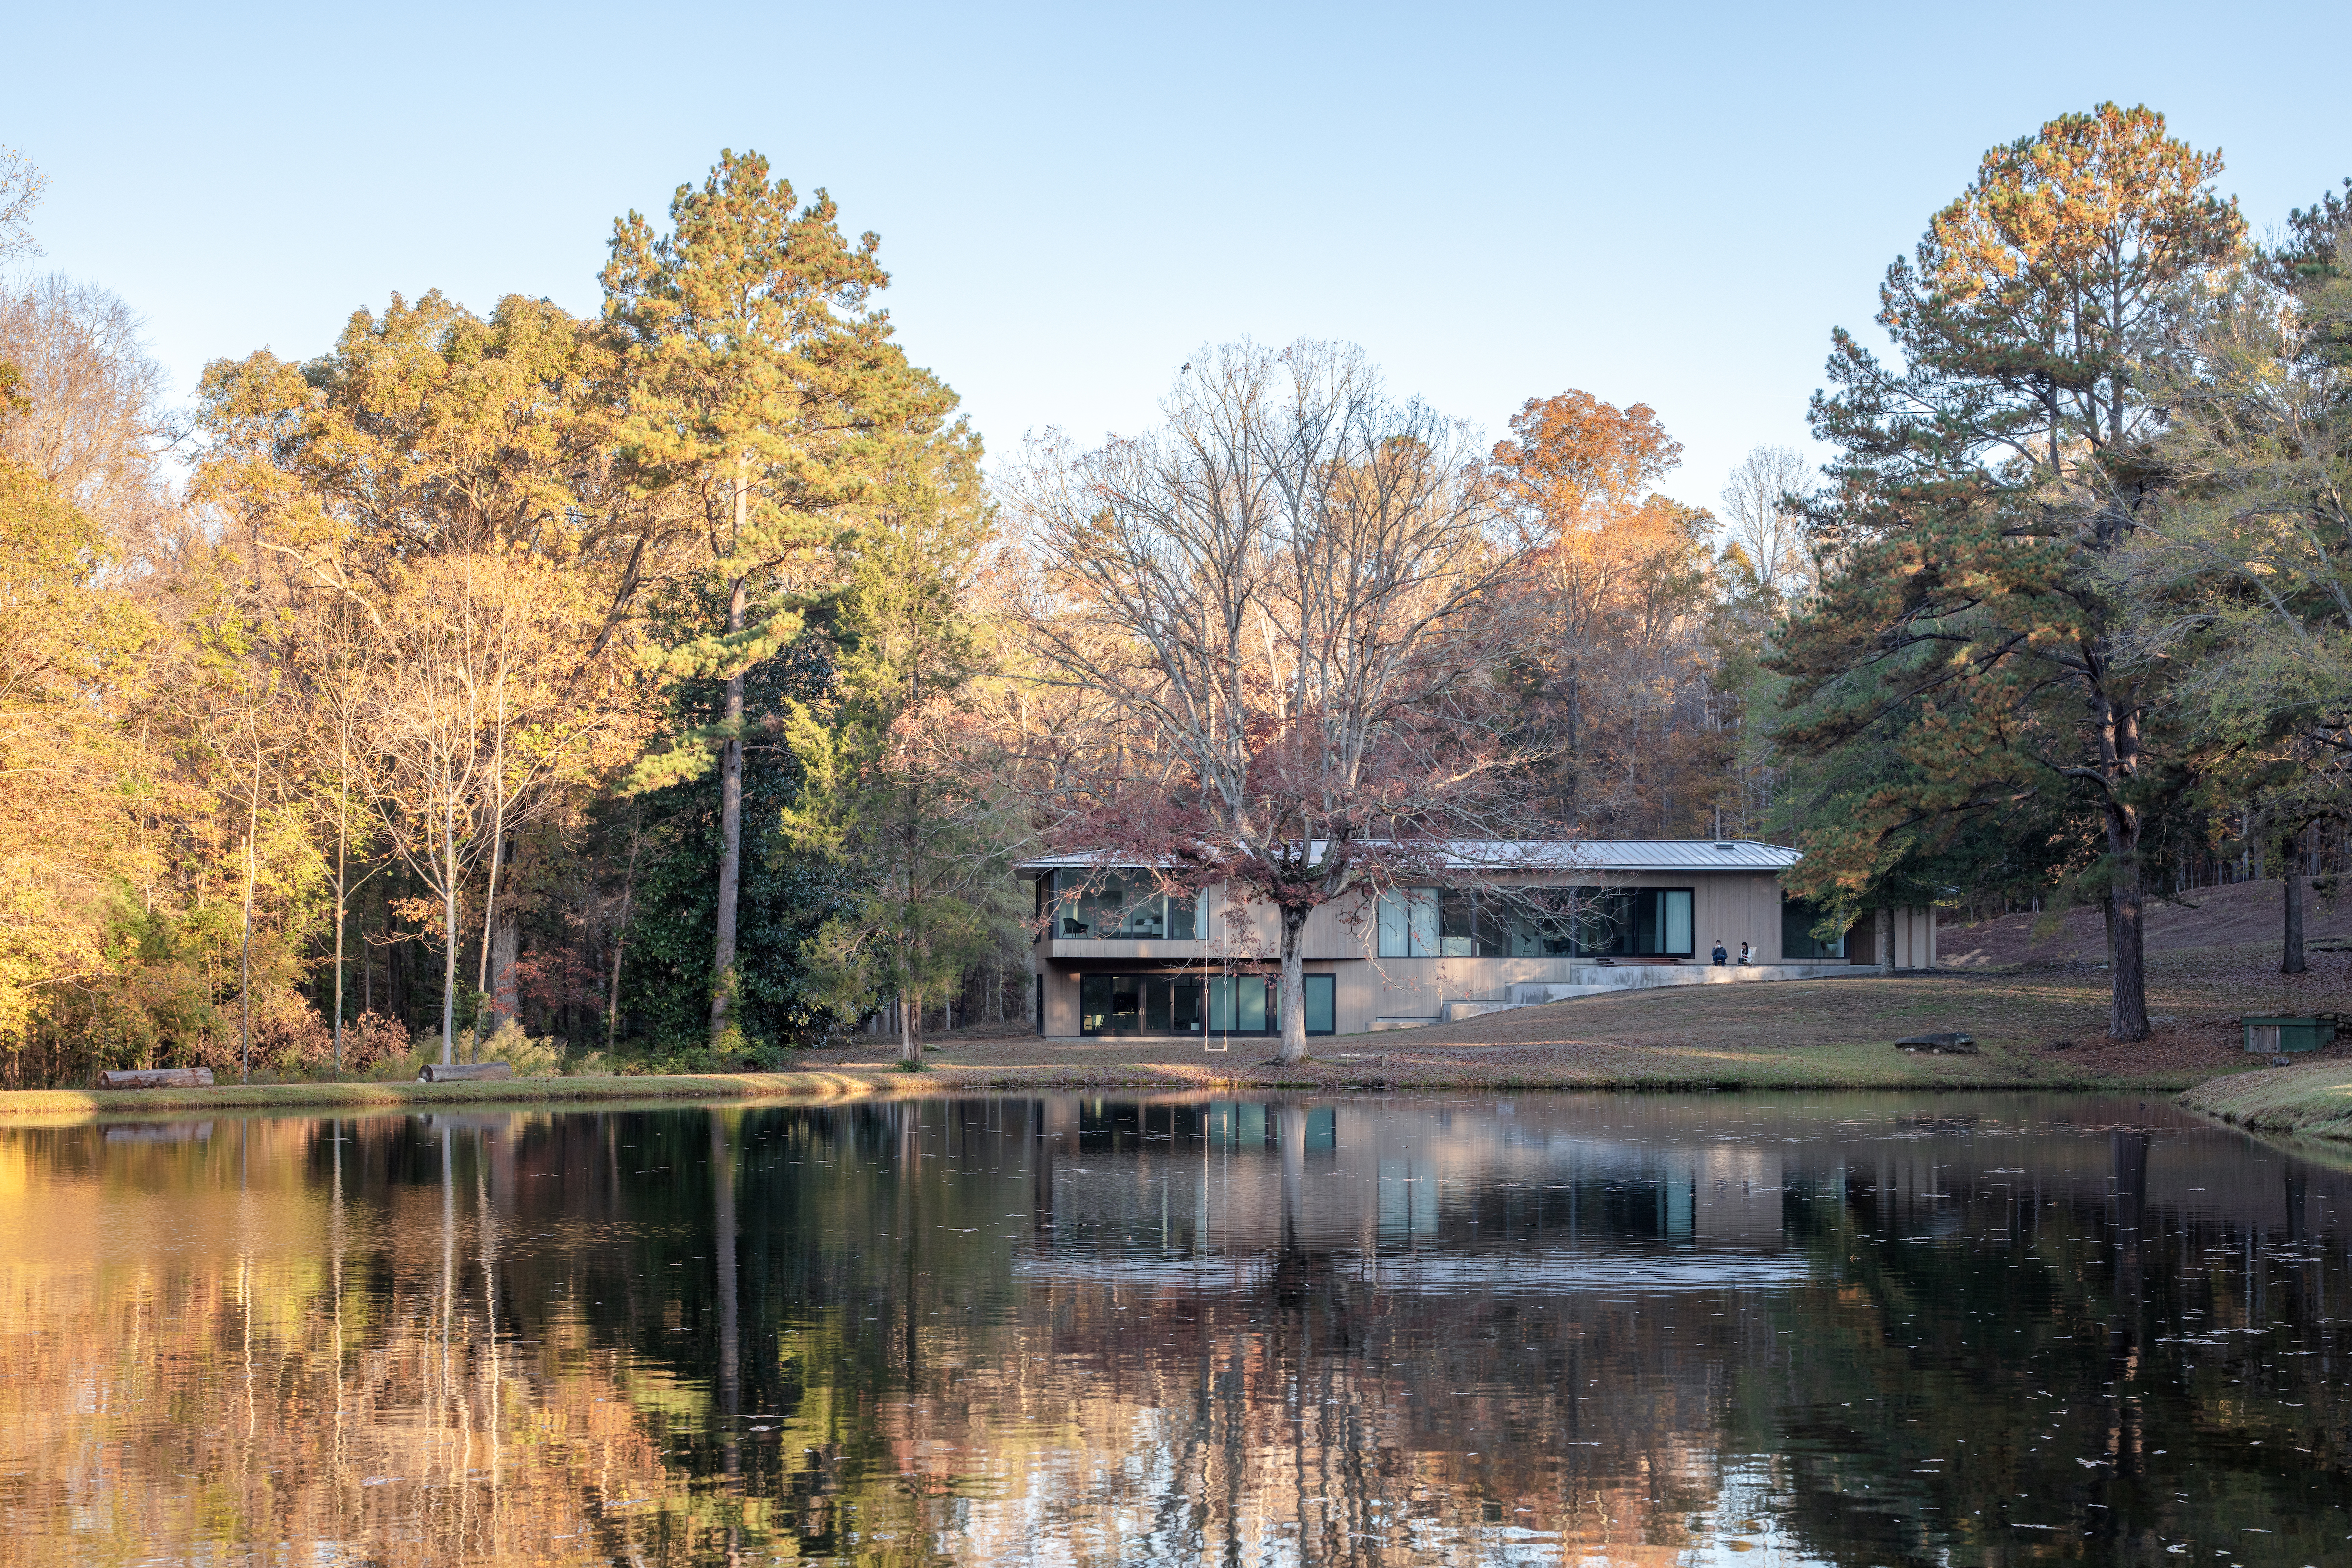 The exterior of a house. The house is surrounded by trees and a lake.